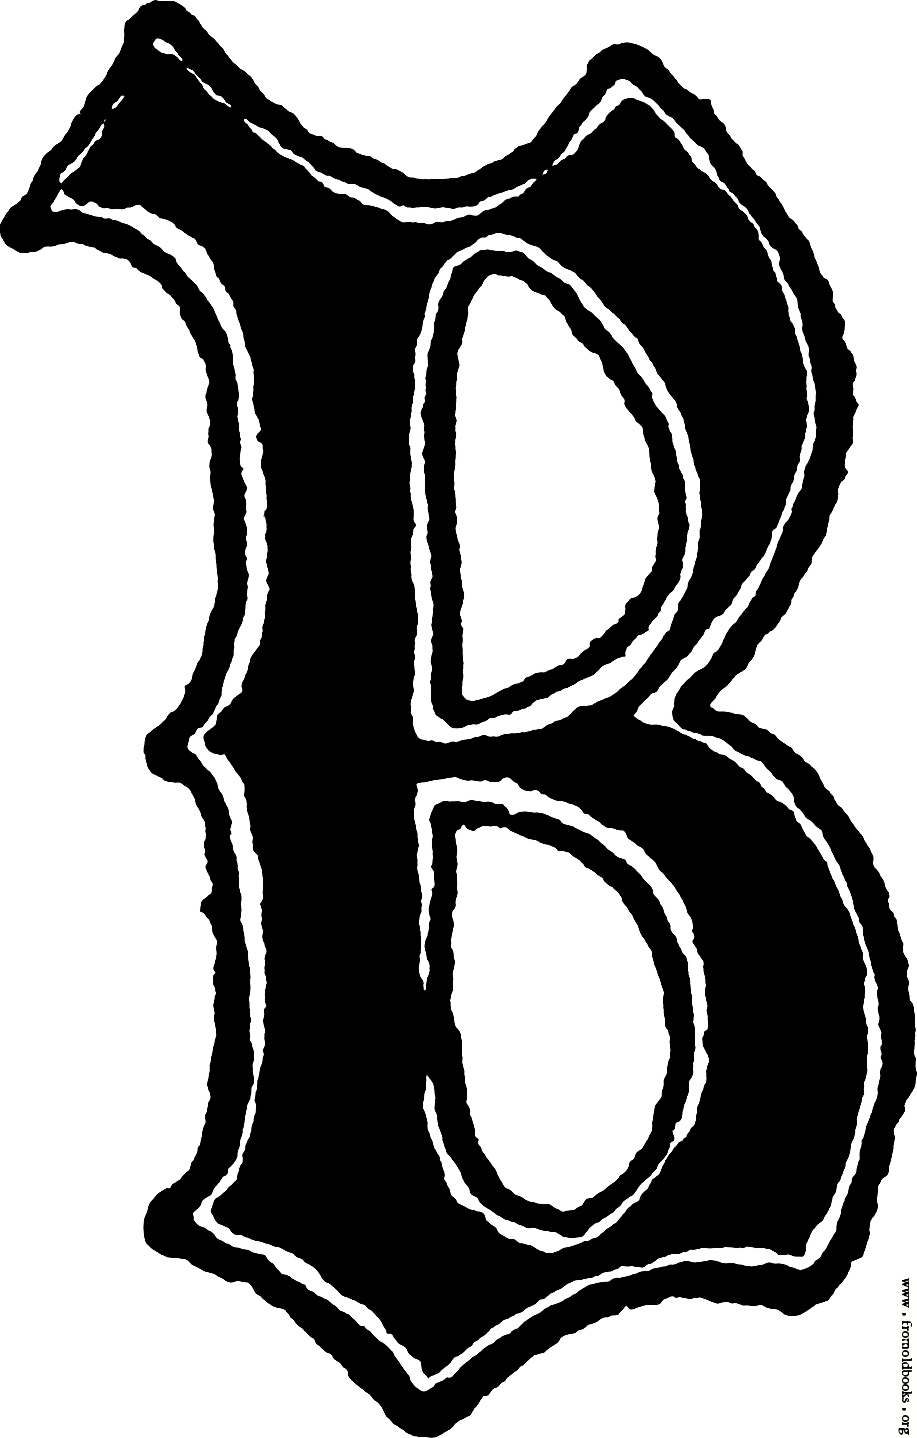 Calligraphic Letter B In 15th Century Gothic Style